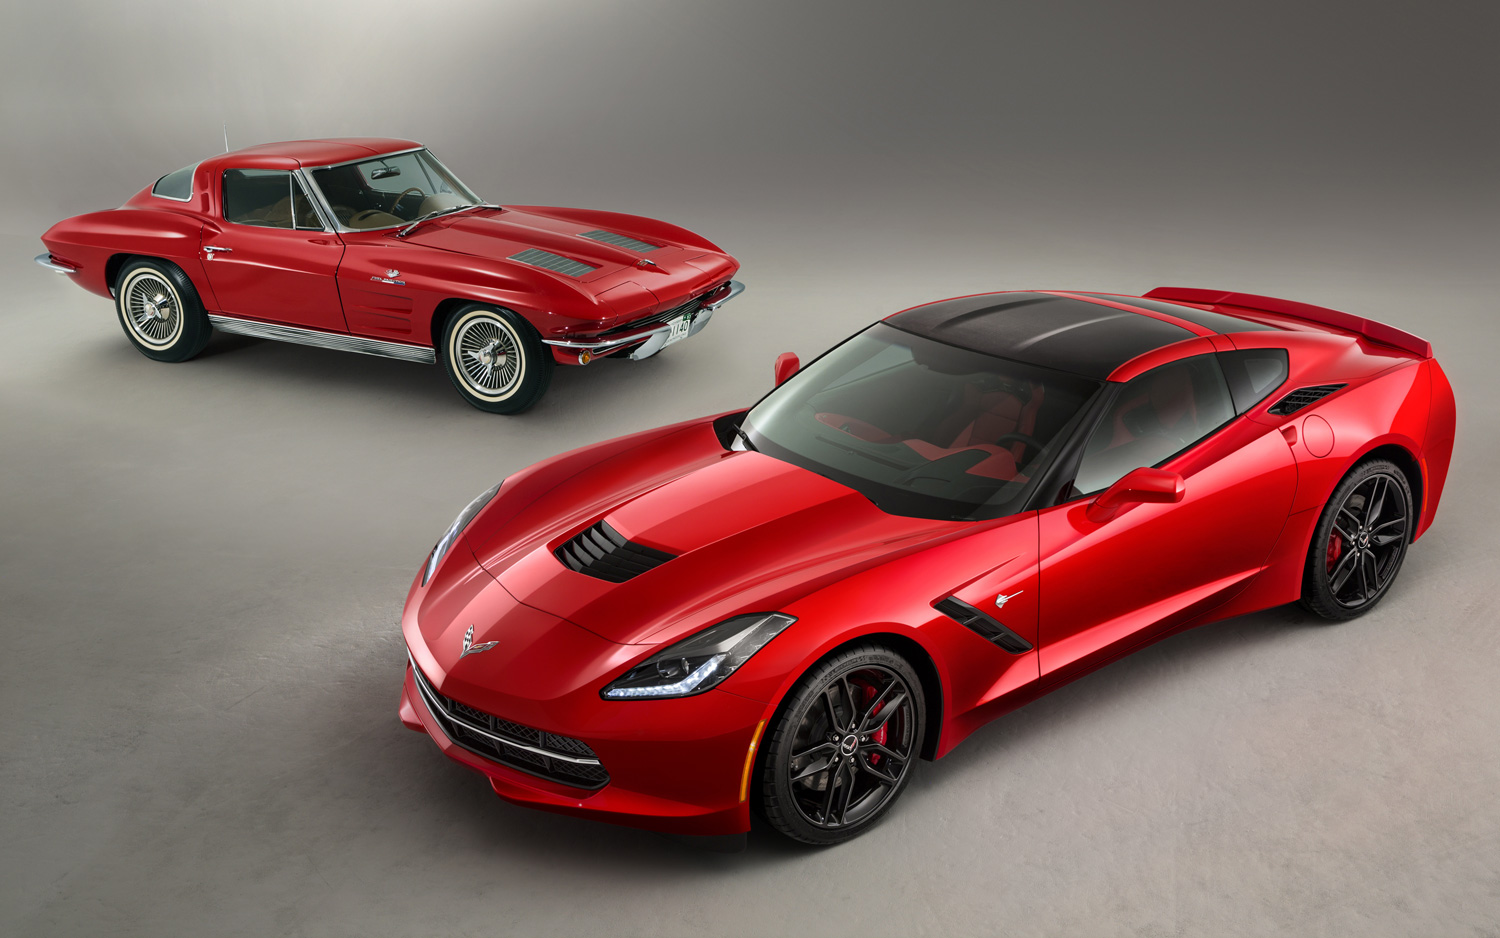 2014 chevrolet corvette c7 new cars reviews. Black Bedroom Furniture Sets. Home Design Ideas